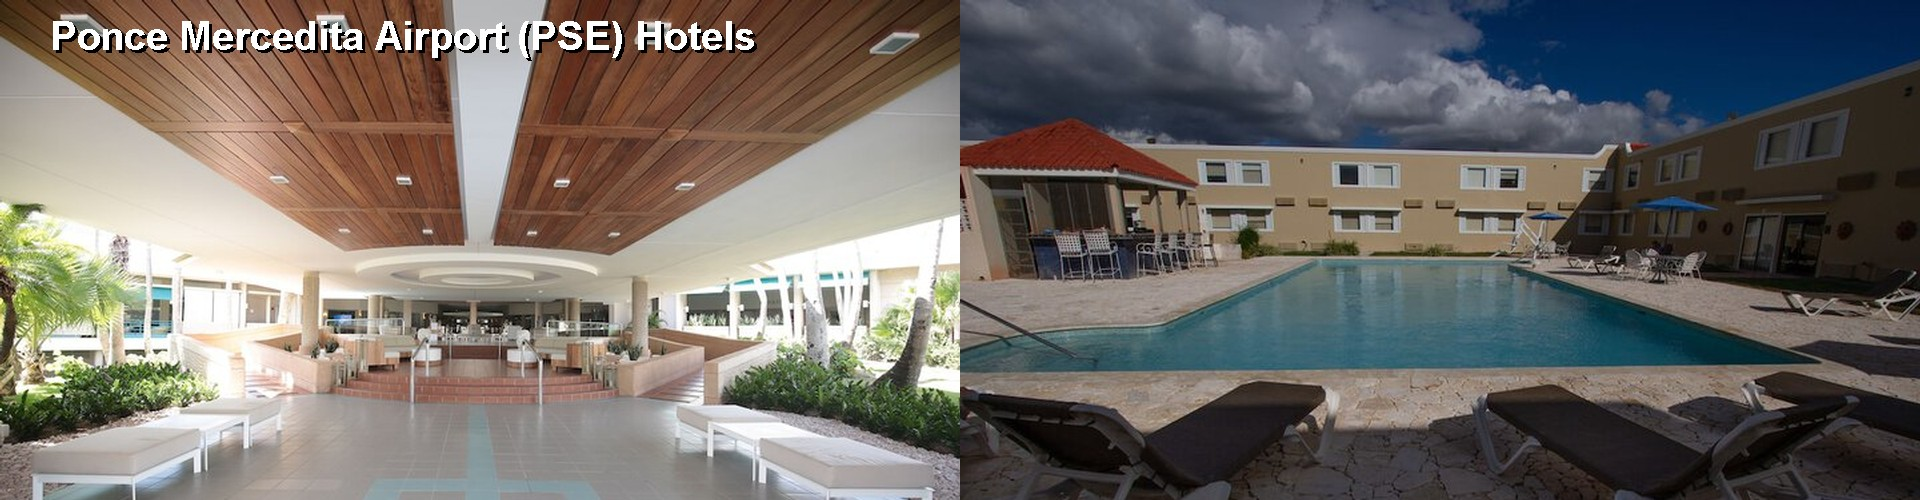 5 Best Hotels near Ponce Mercedita Airport (PSE)